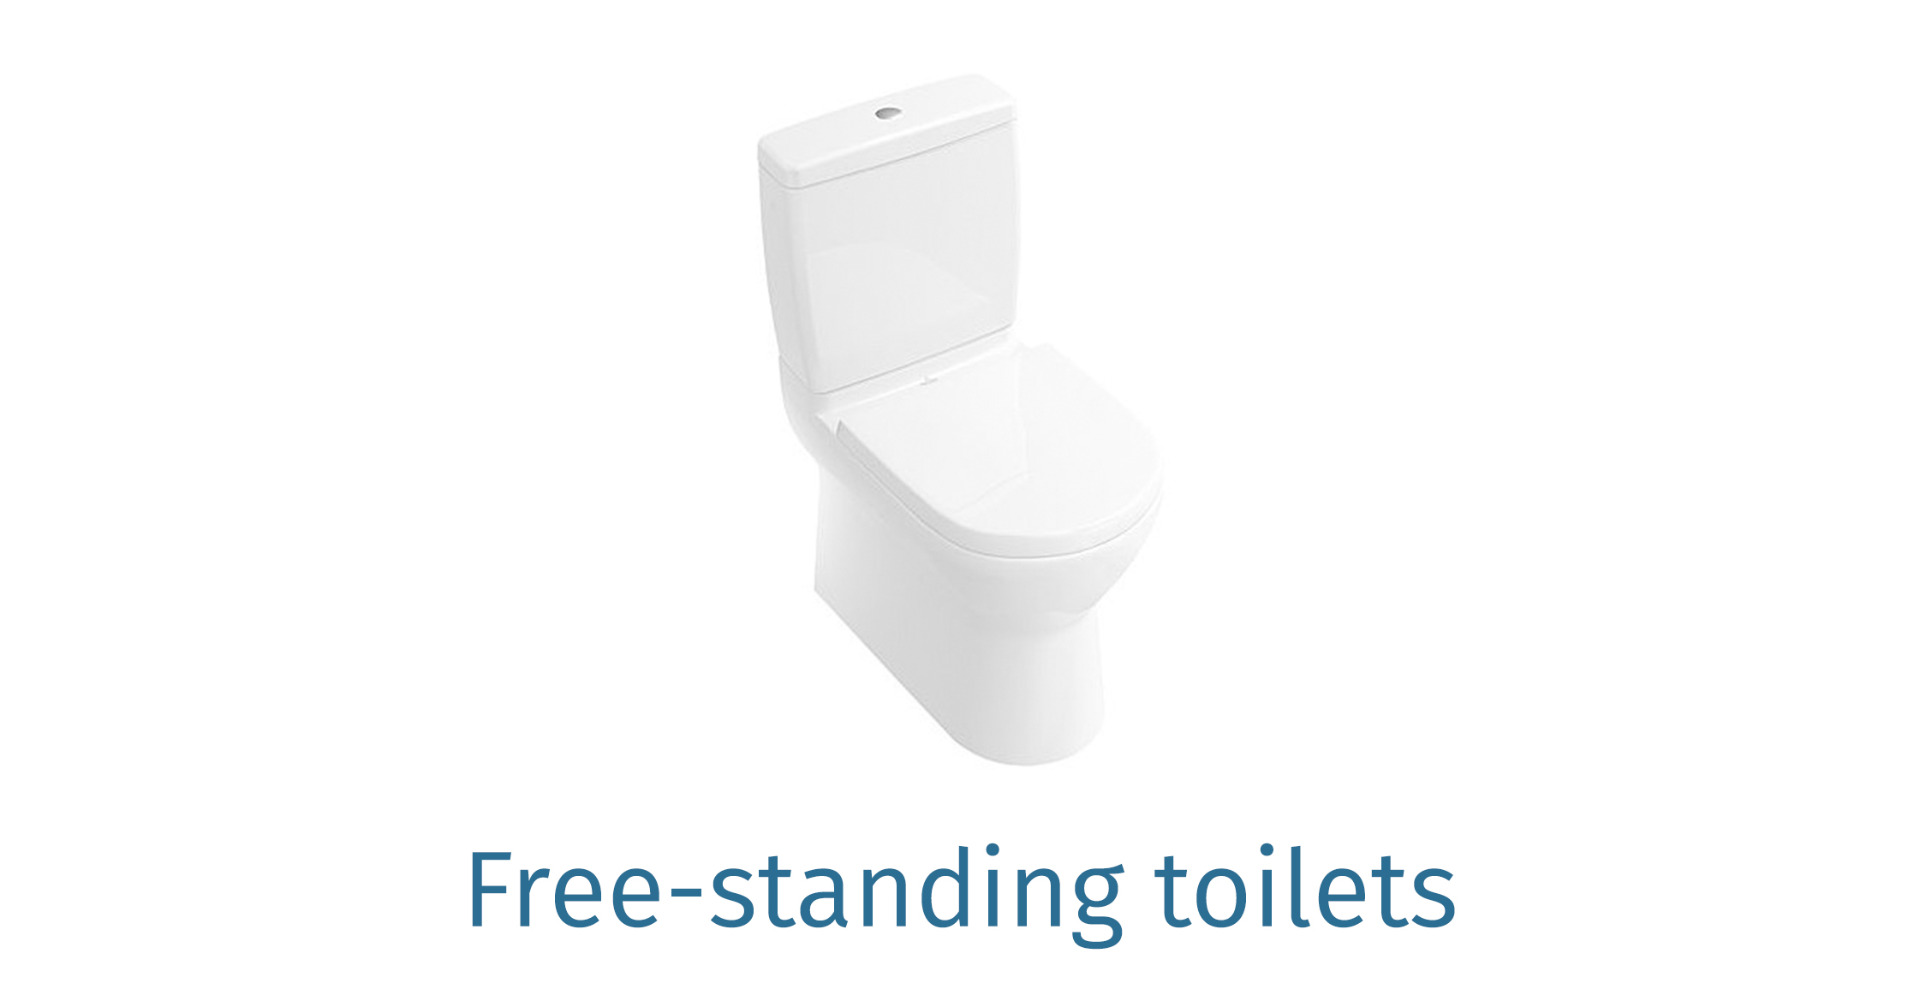 Free-standing toilets